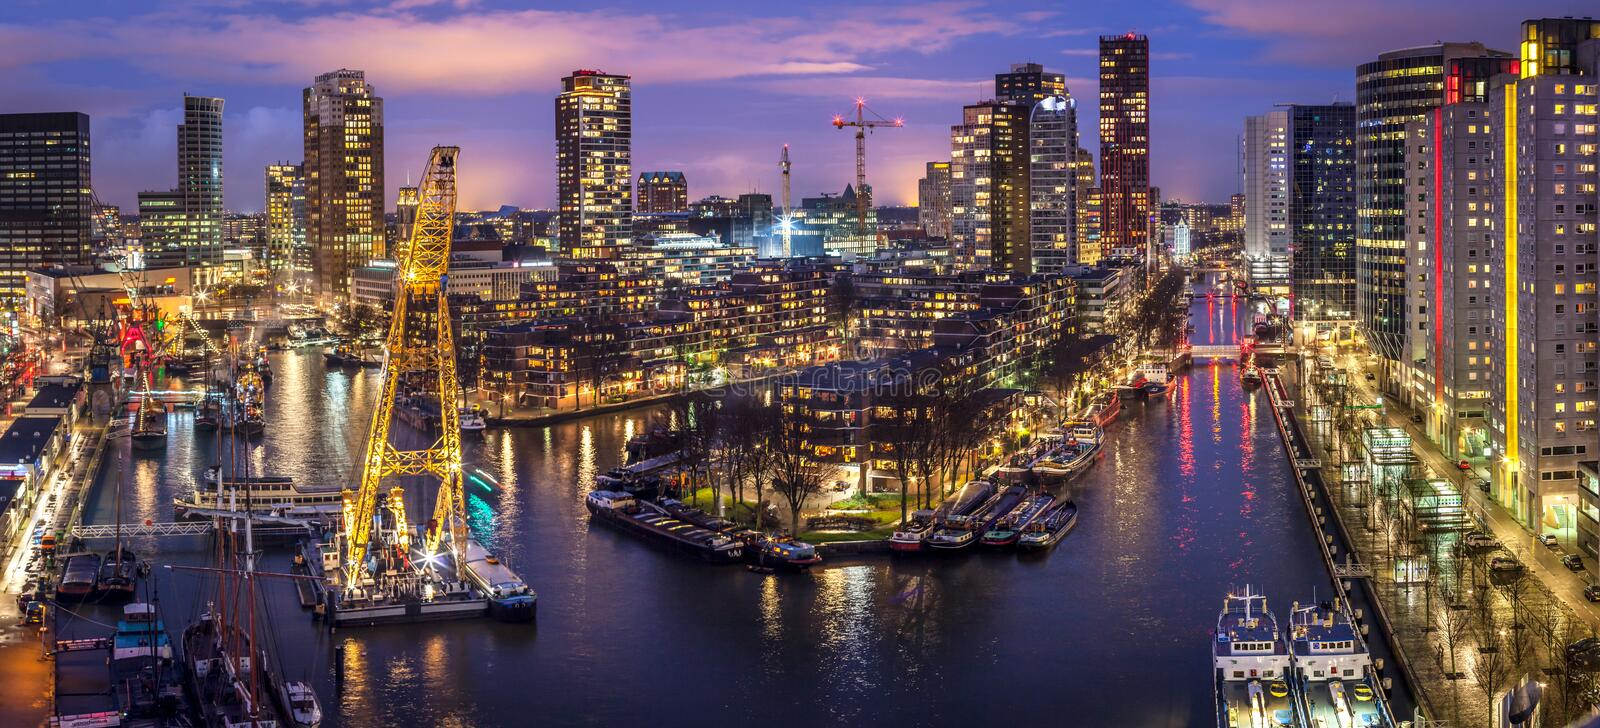 Old Harbor Rotterdam City stock images